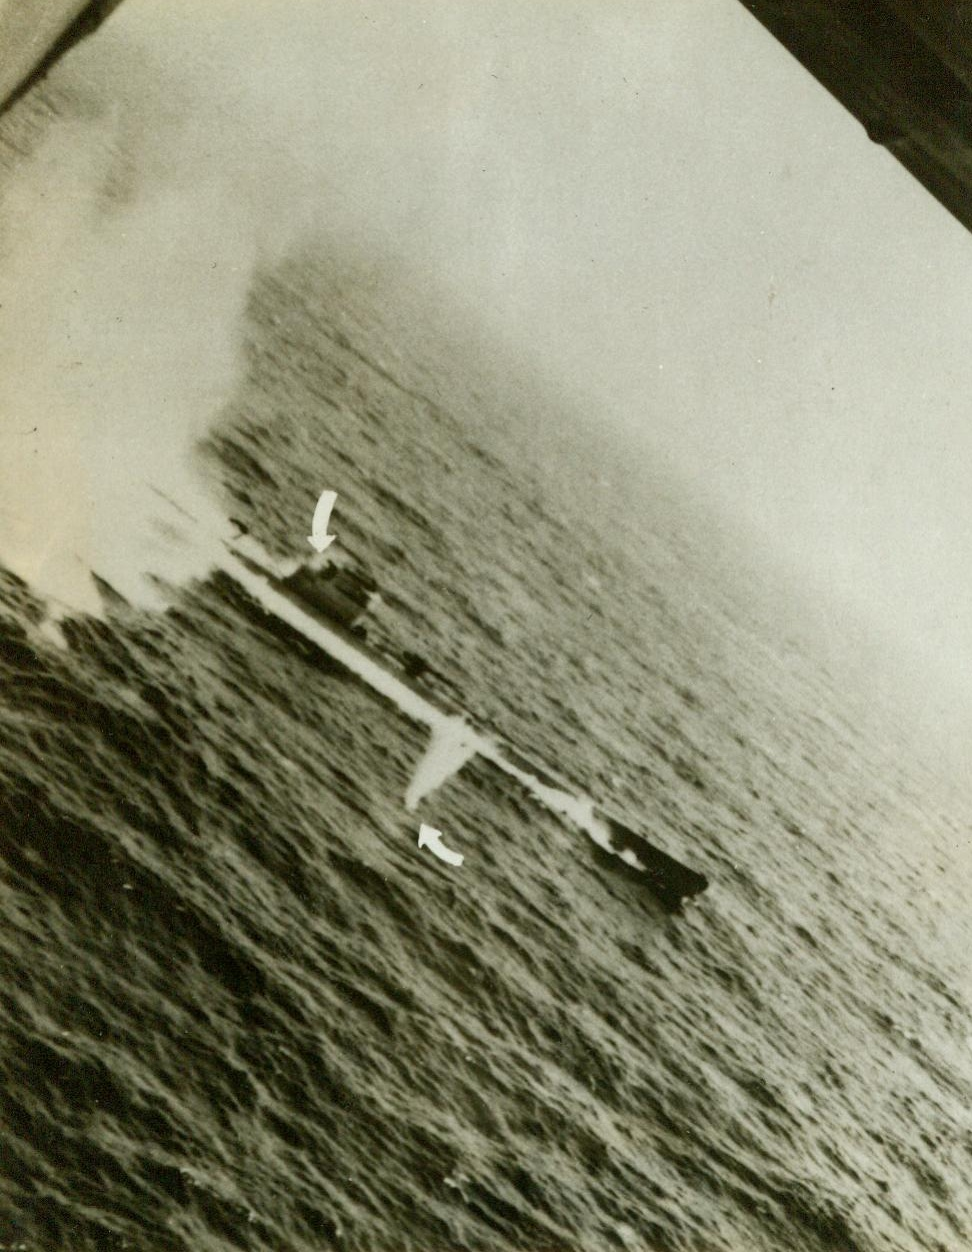 """""""Tidewater Tillie"""" Scores Again – (#1), 5/25/1943. The crew of a specially equipped Liberator B-24 Bomber of the U.S. Army Air Forces Anti-Submarine Command made this photo of a successful attack on a Nazi U-Boat, proving they had scored a """"kill"""". Once before they had attacked an enemy sub and had been given credit for only a """"Probable"""", because their photos hadn't shown conclusively that the undersea boat was destroyed. This time, photos of the attack, and of the wreckage on the surface after the attack made the """"kill"""" a certainty. Here, the B-24 comes in on its bomb run over the sub, its machine guns blazing. Arrow, (at left), shows a Nazi crew member hit and dropping to the deck, after an American bullet had scored a hit. Another machine gun bullet splashes into the sea, (arrow at right). A few seconds later, depth bombs from the plane blasted the sub to the bottom.  Credit line (U.S. Army Air Forces Photo);"""